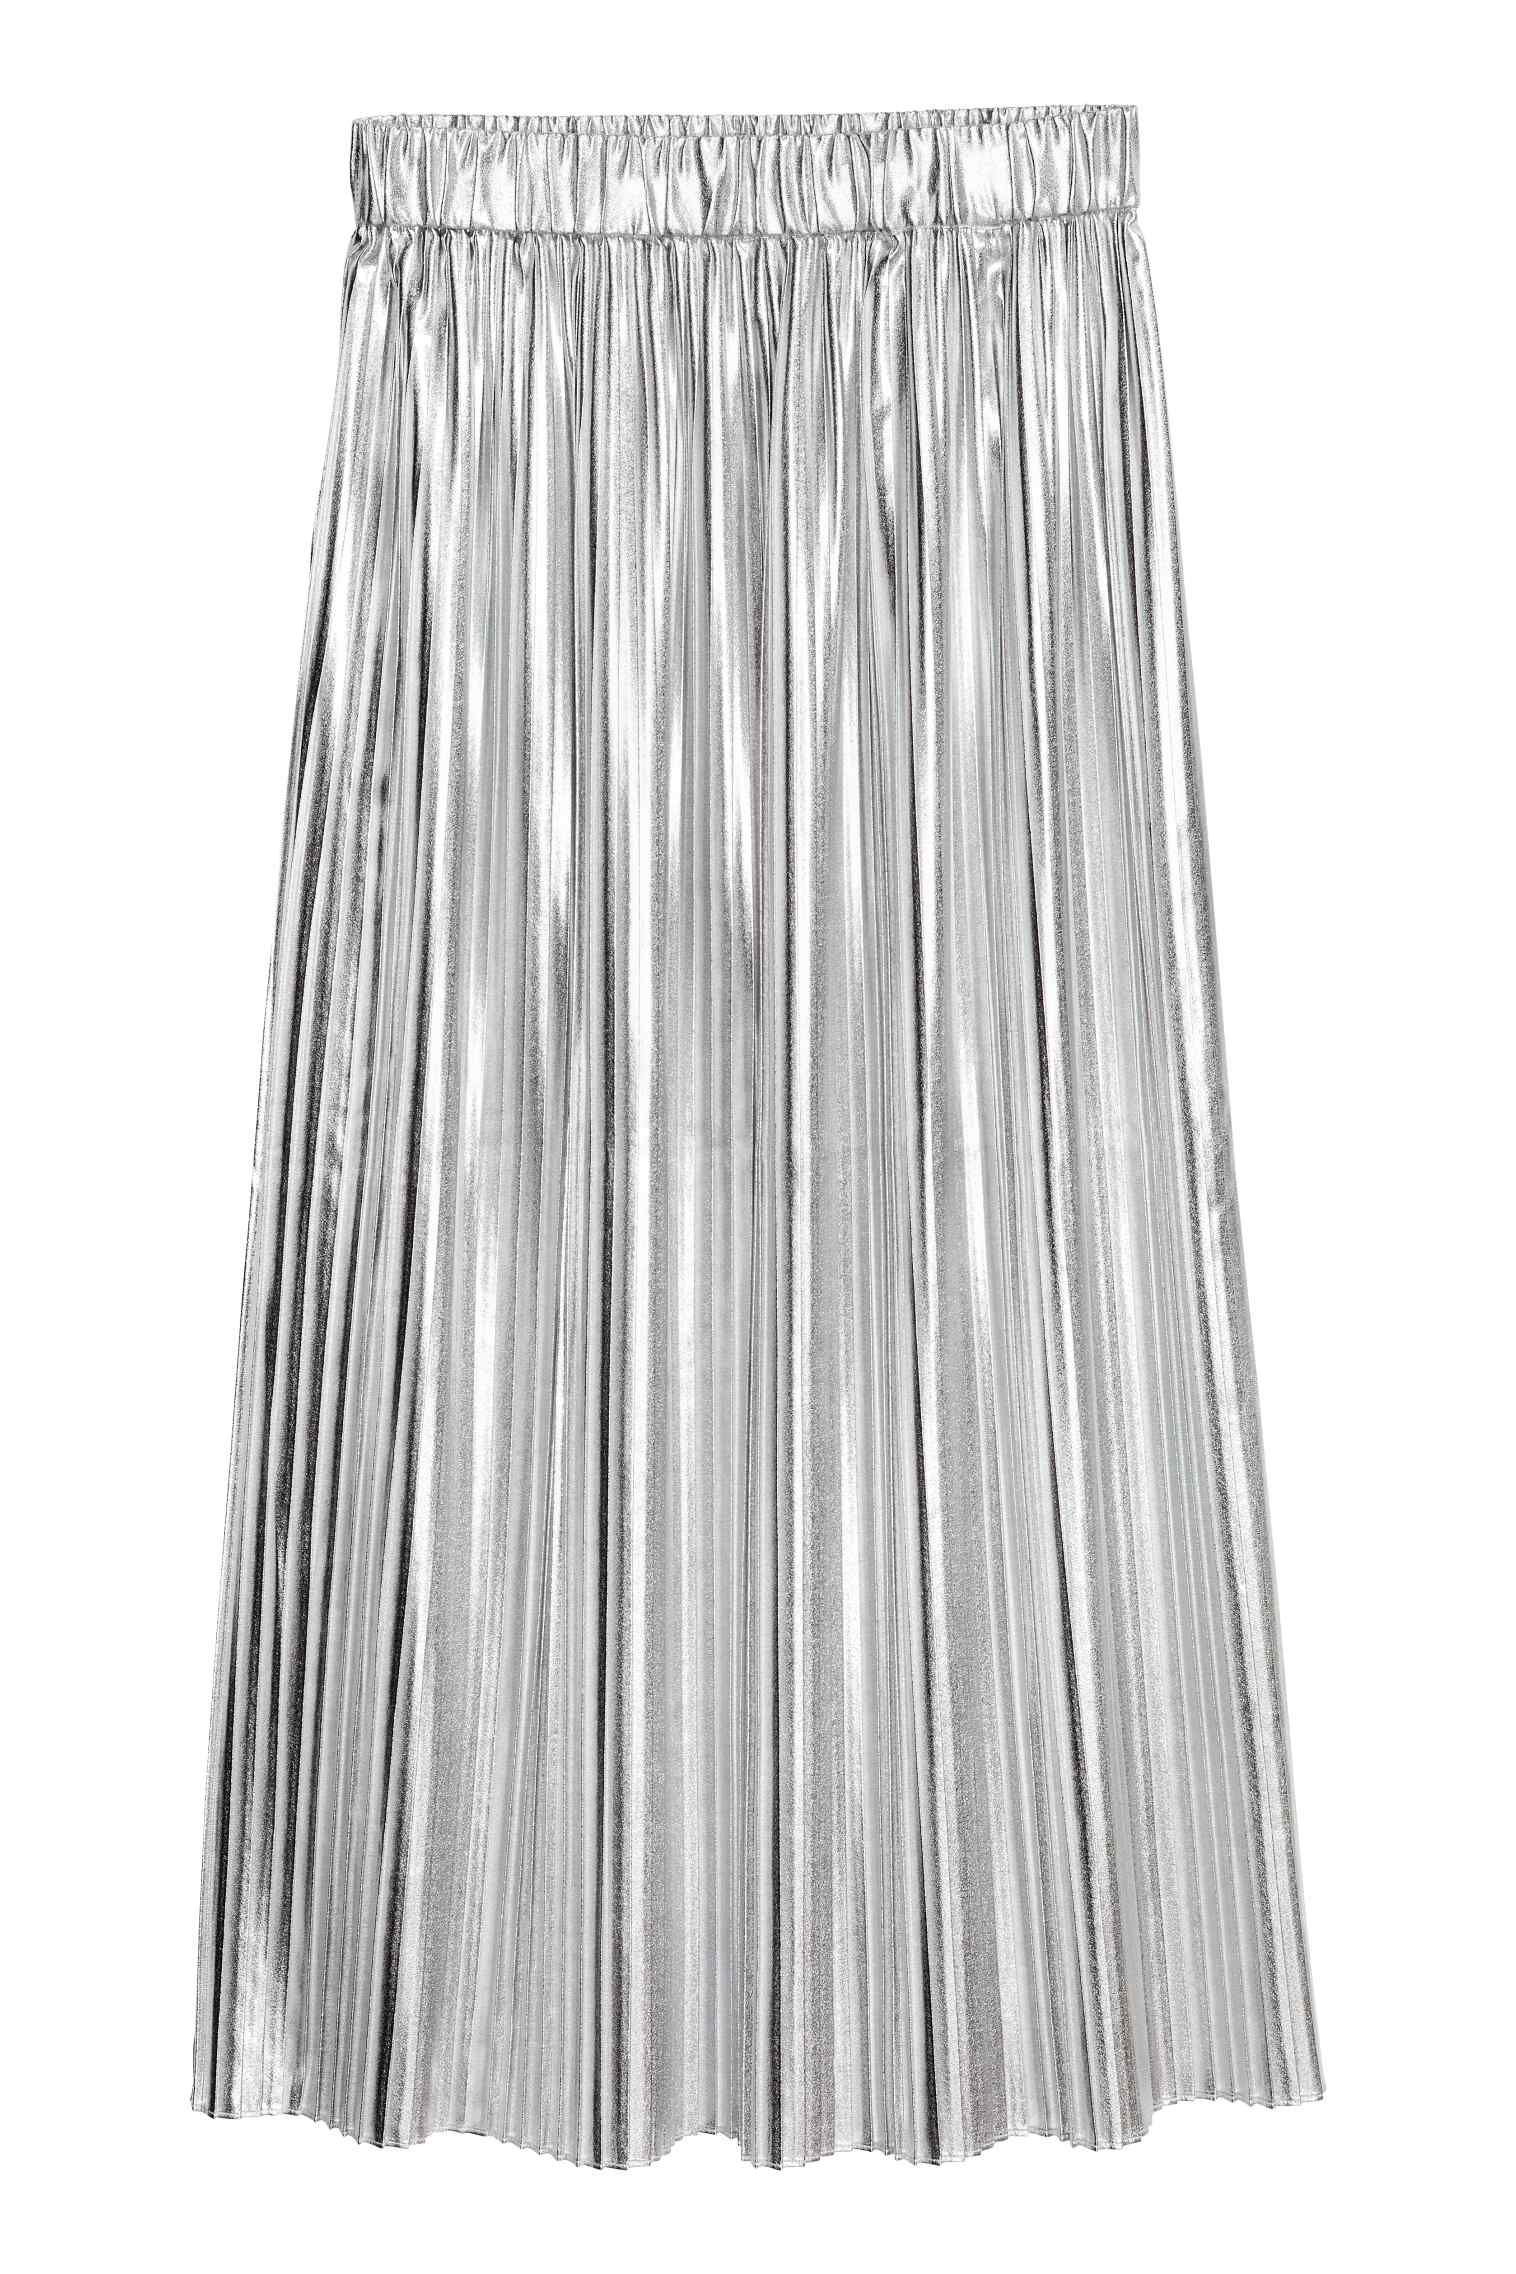 c46f4dcbe847d8 Jupe plissée | mode - my style ? my wishes ? | Silver skirt, Pleated ...